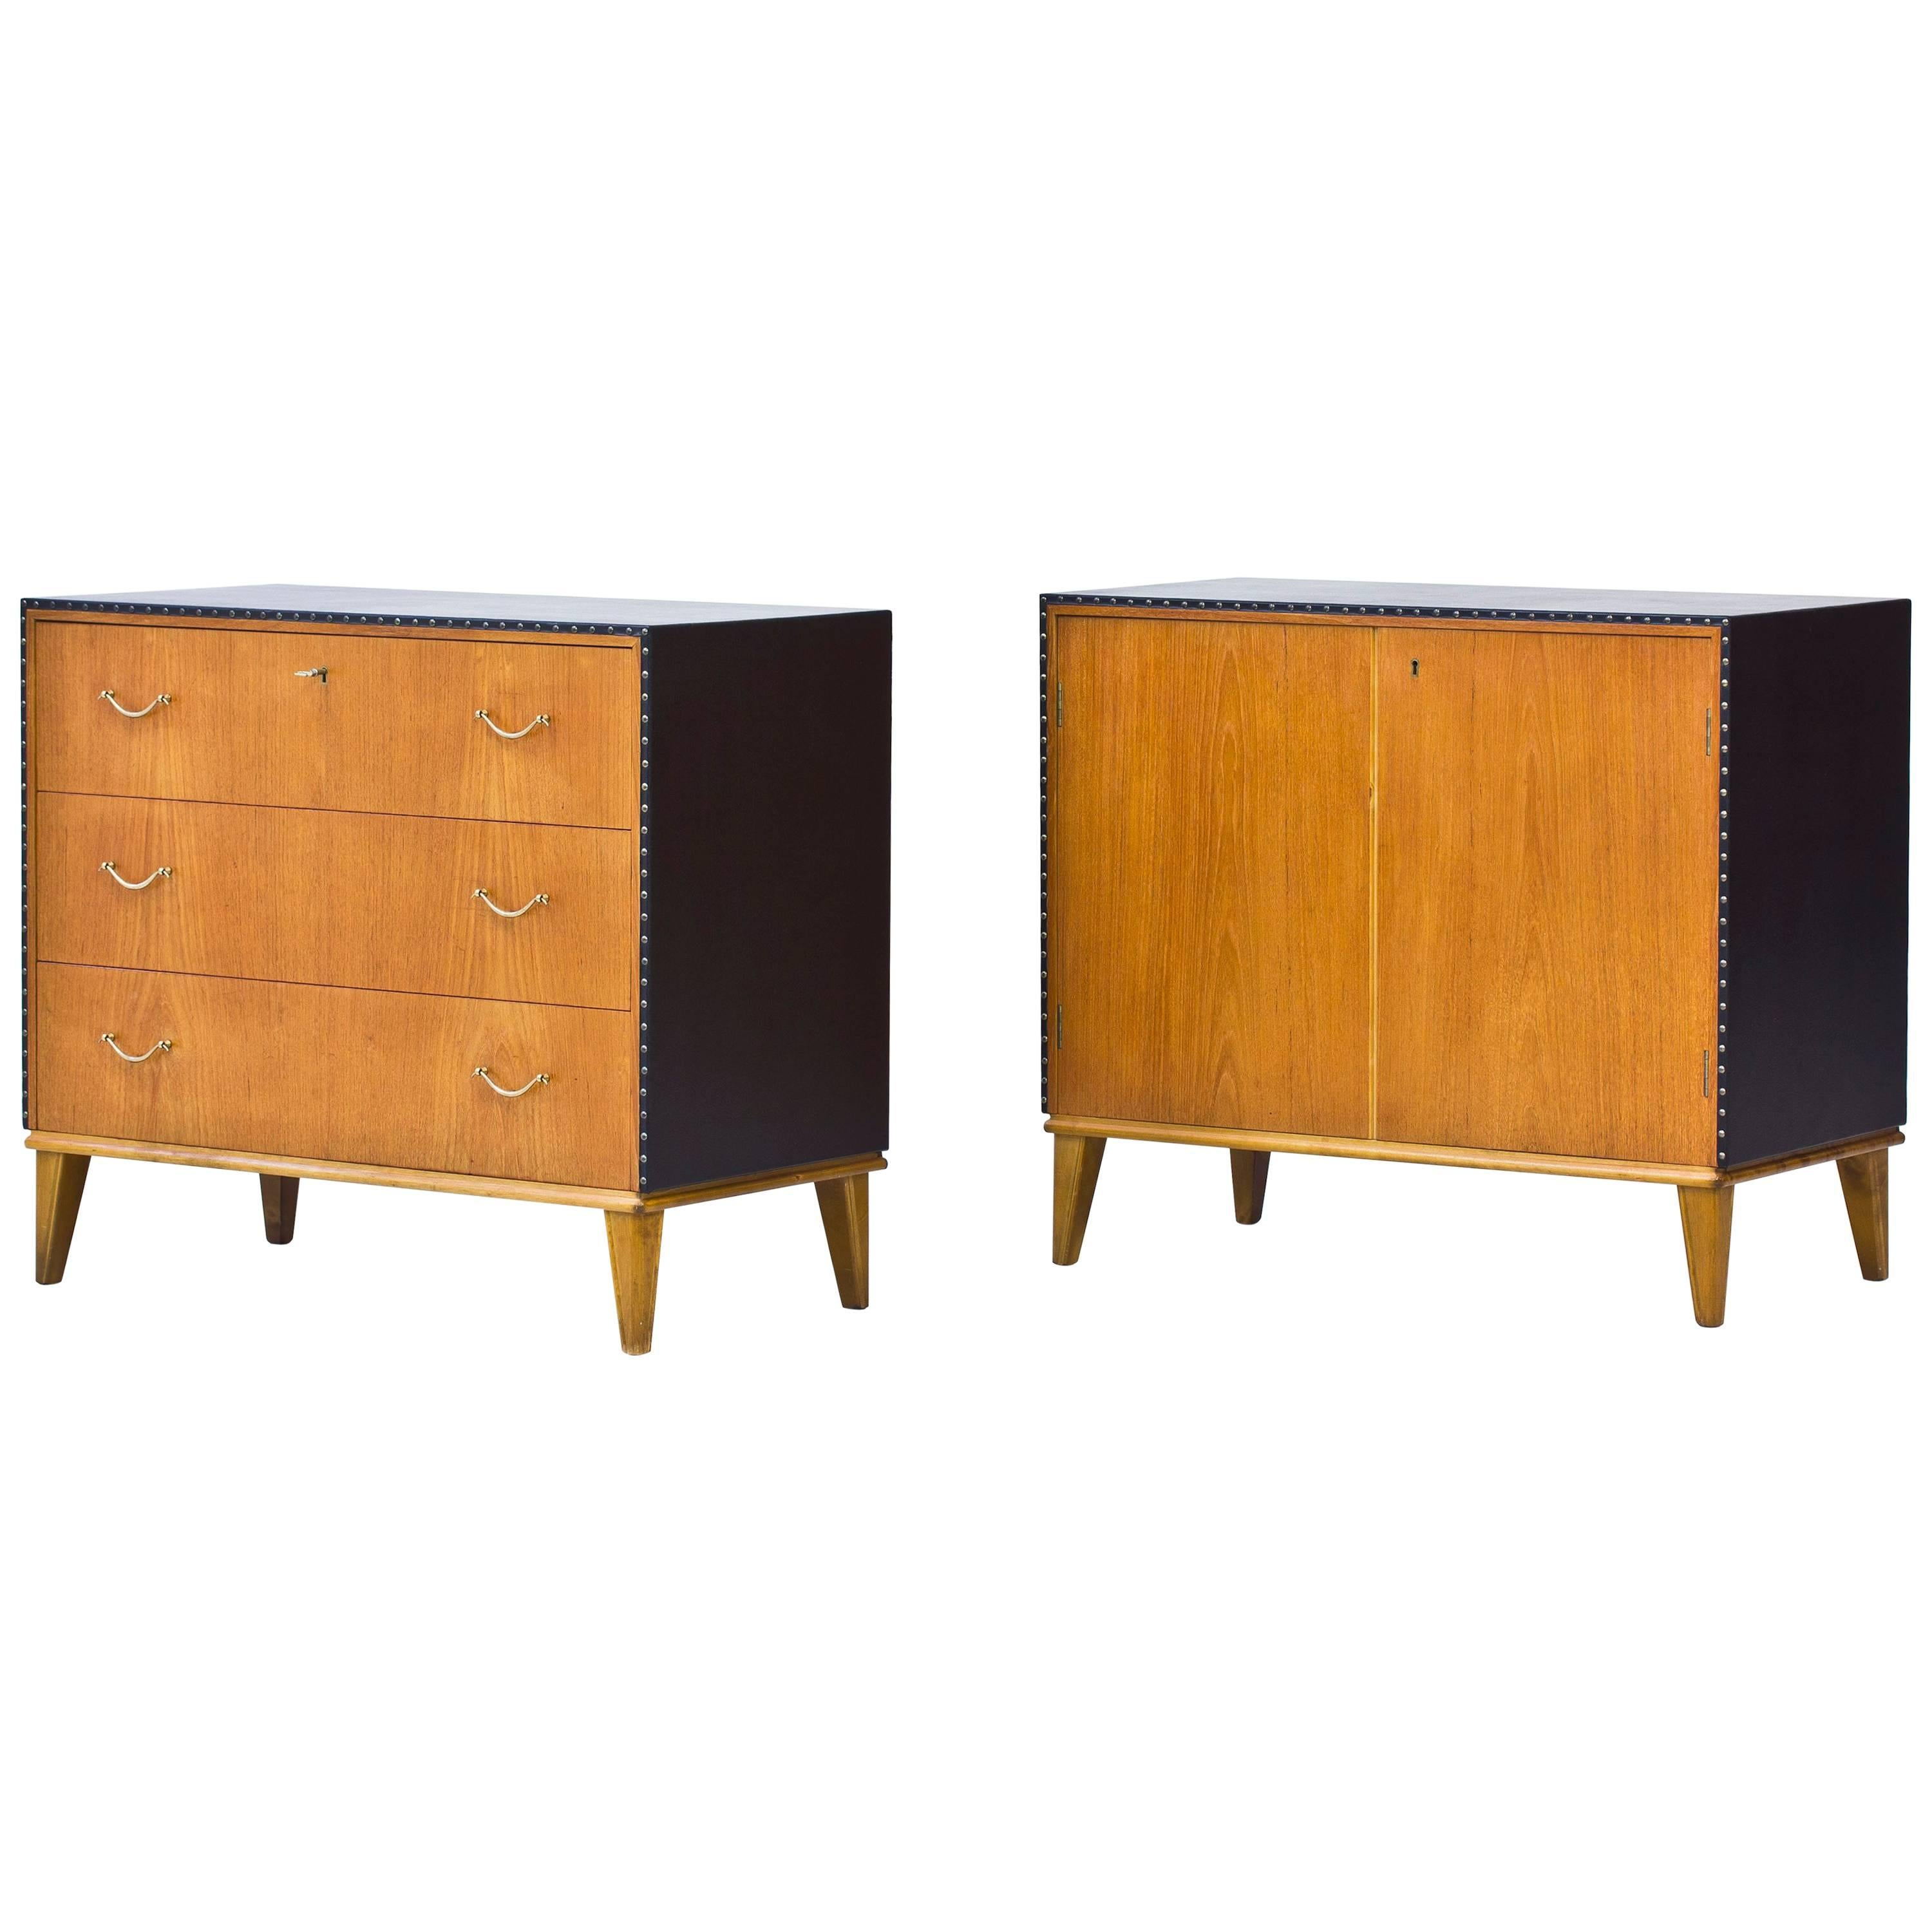 Matching Swedish 1940s Chest and Cabinet in the Style of Otto Schulz